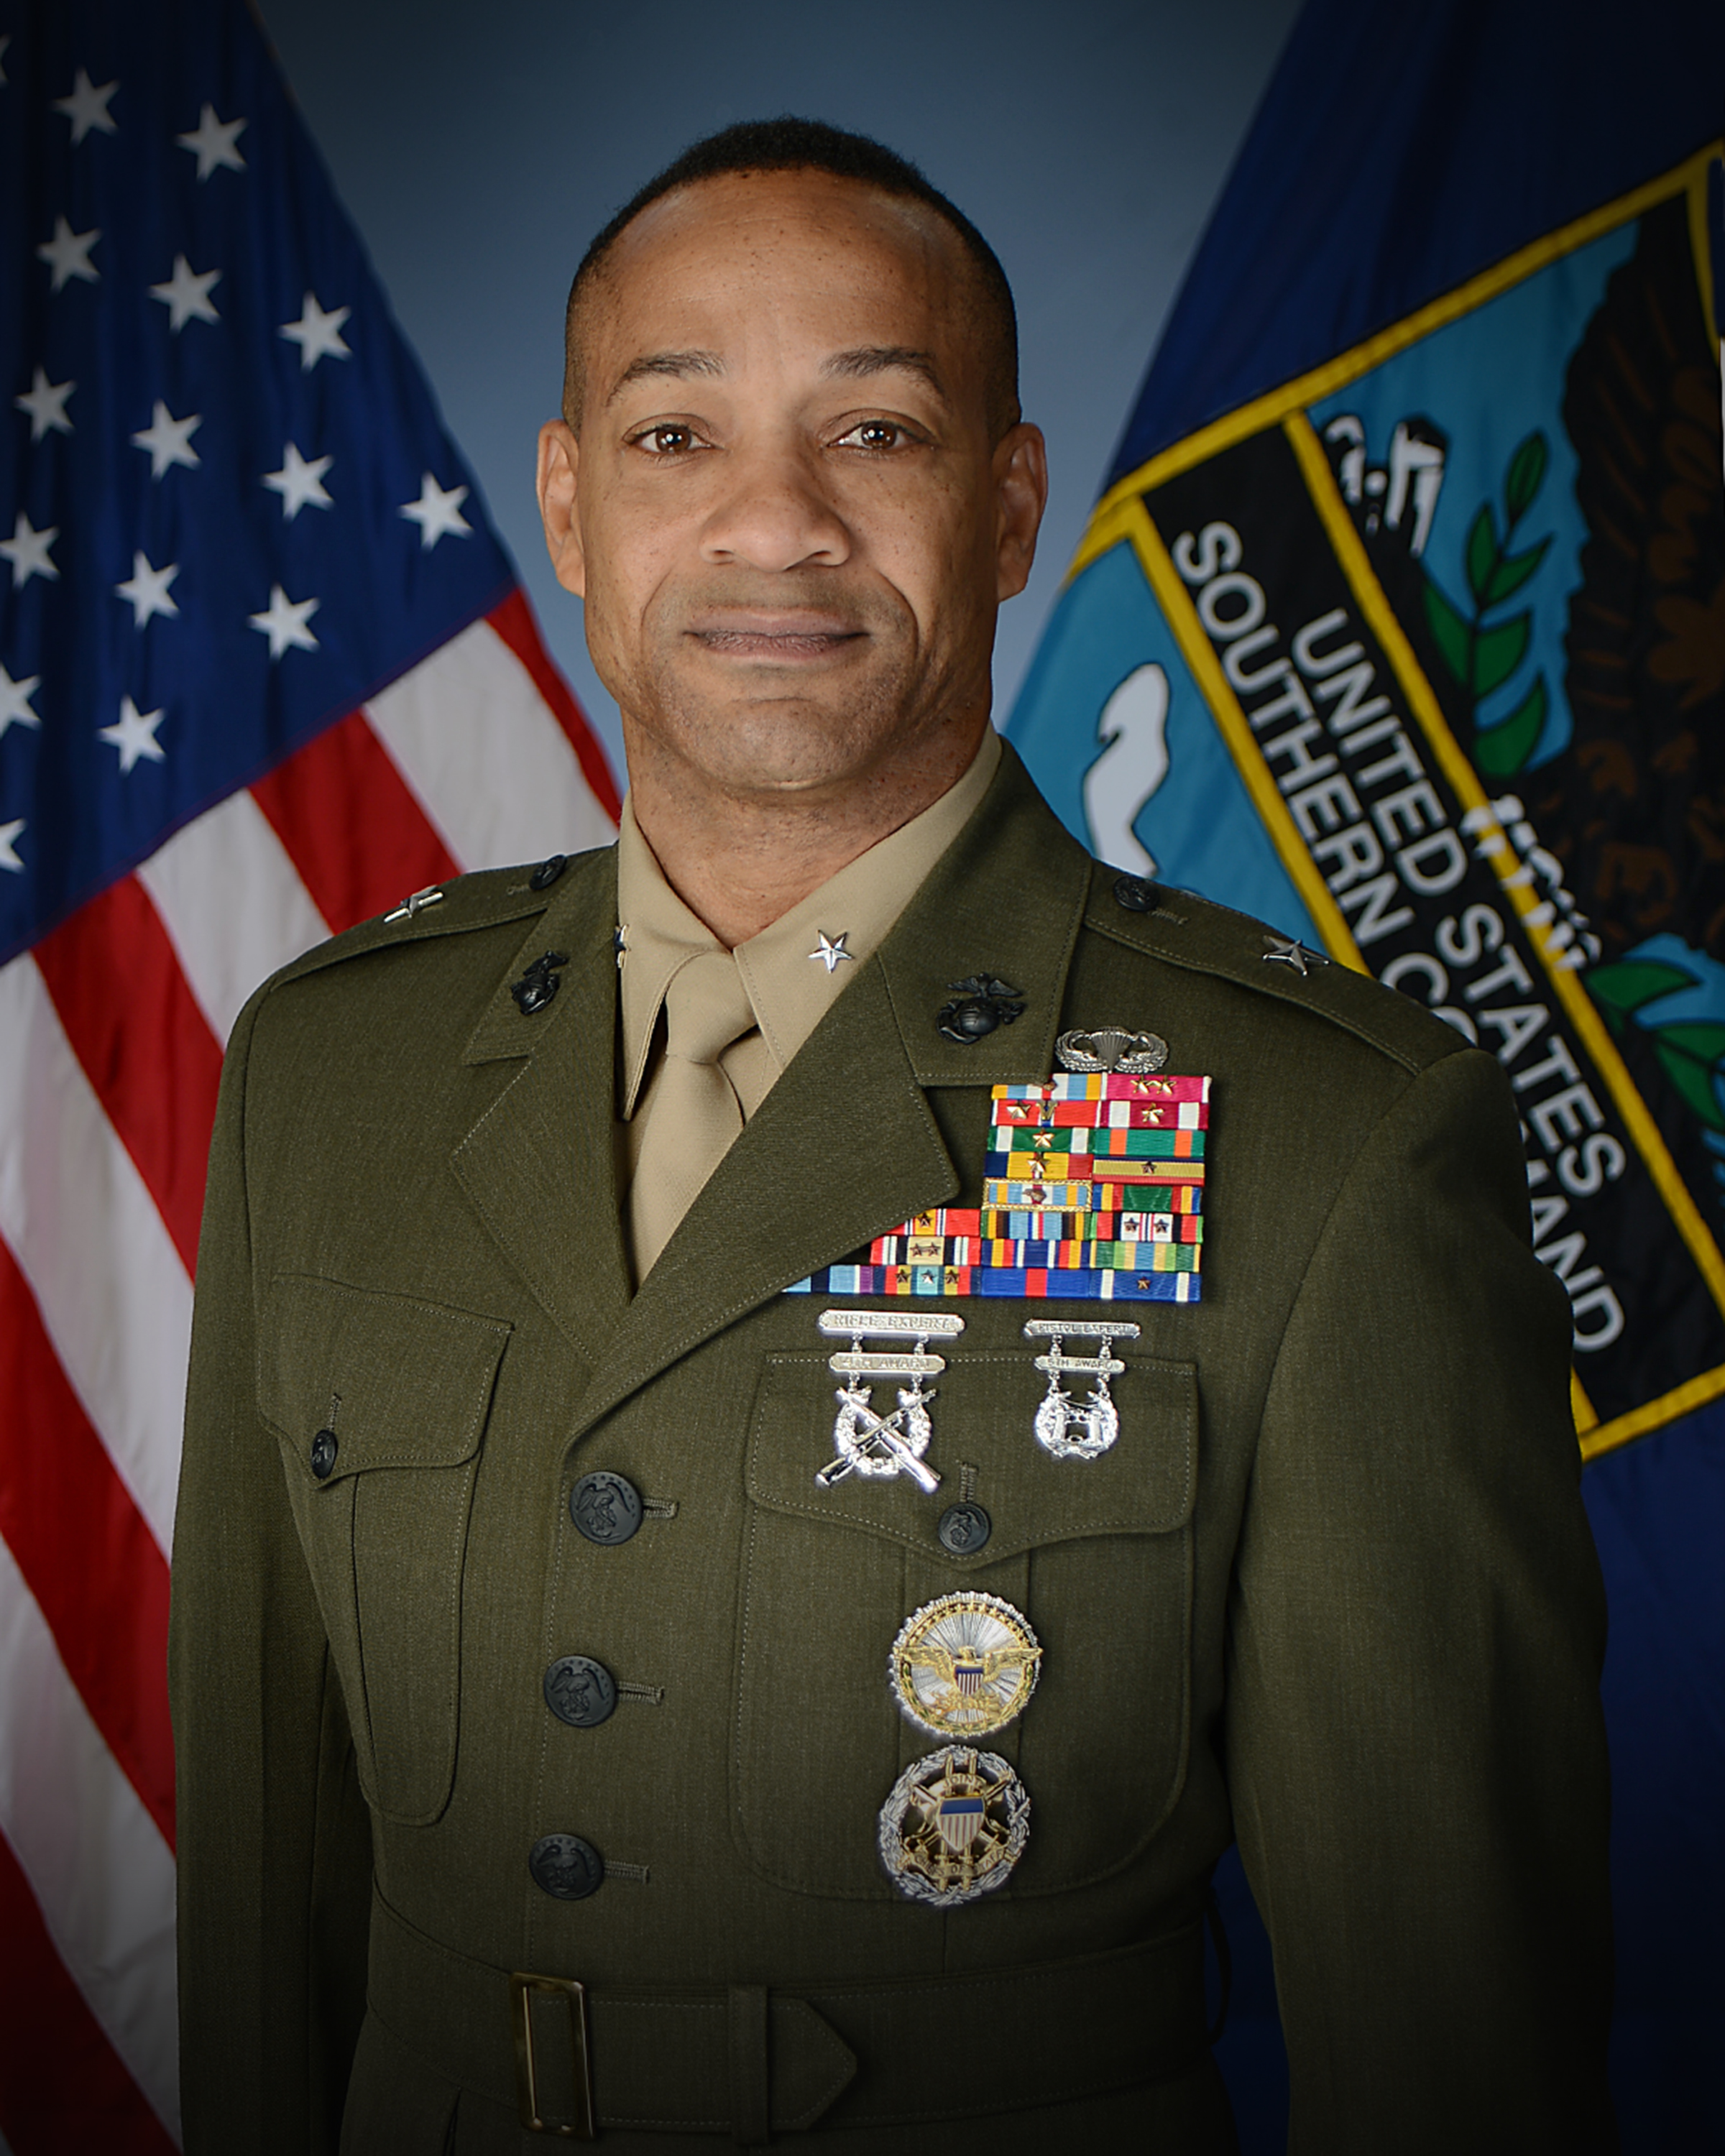 Director J5 Strategy, Policy, and Plans: Army Brig. Gen. Antonio M. Fletcher